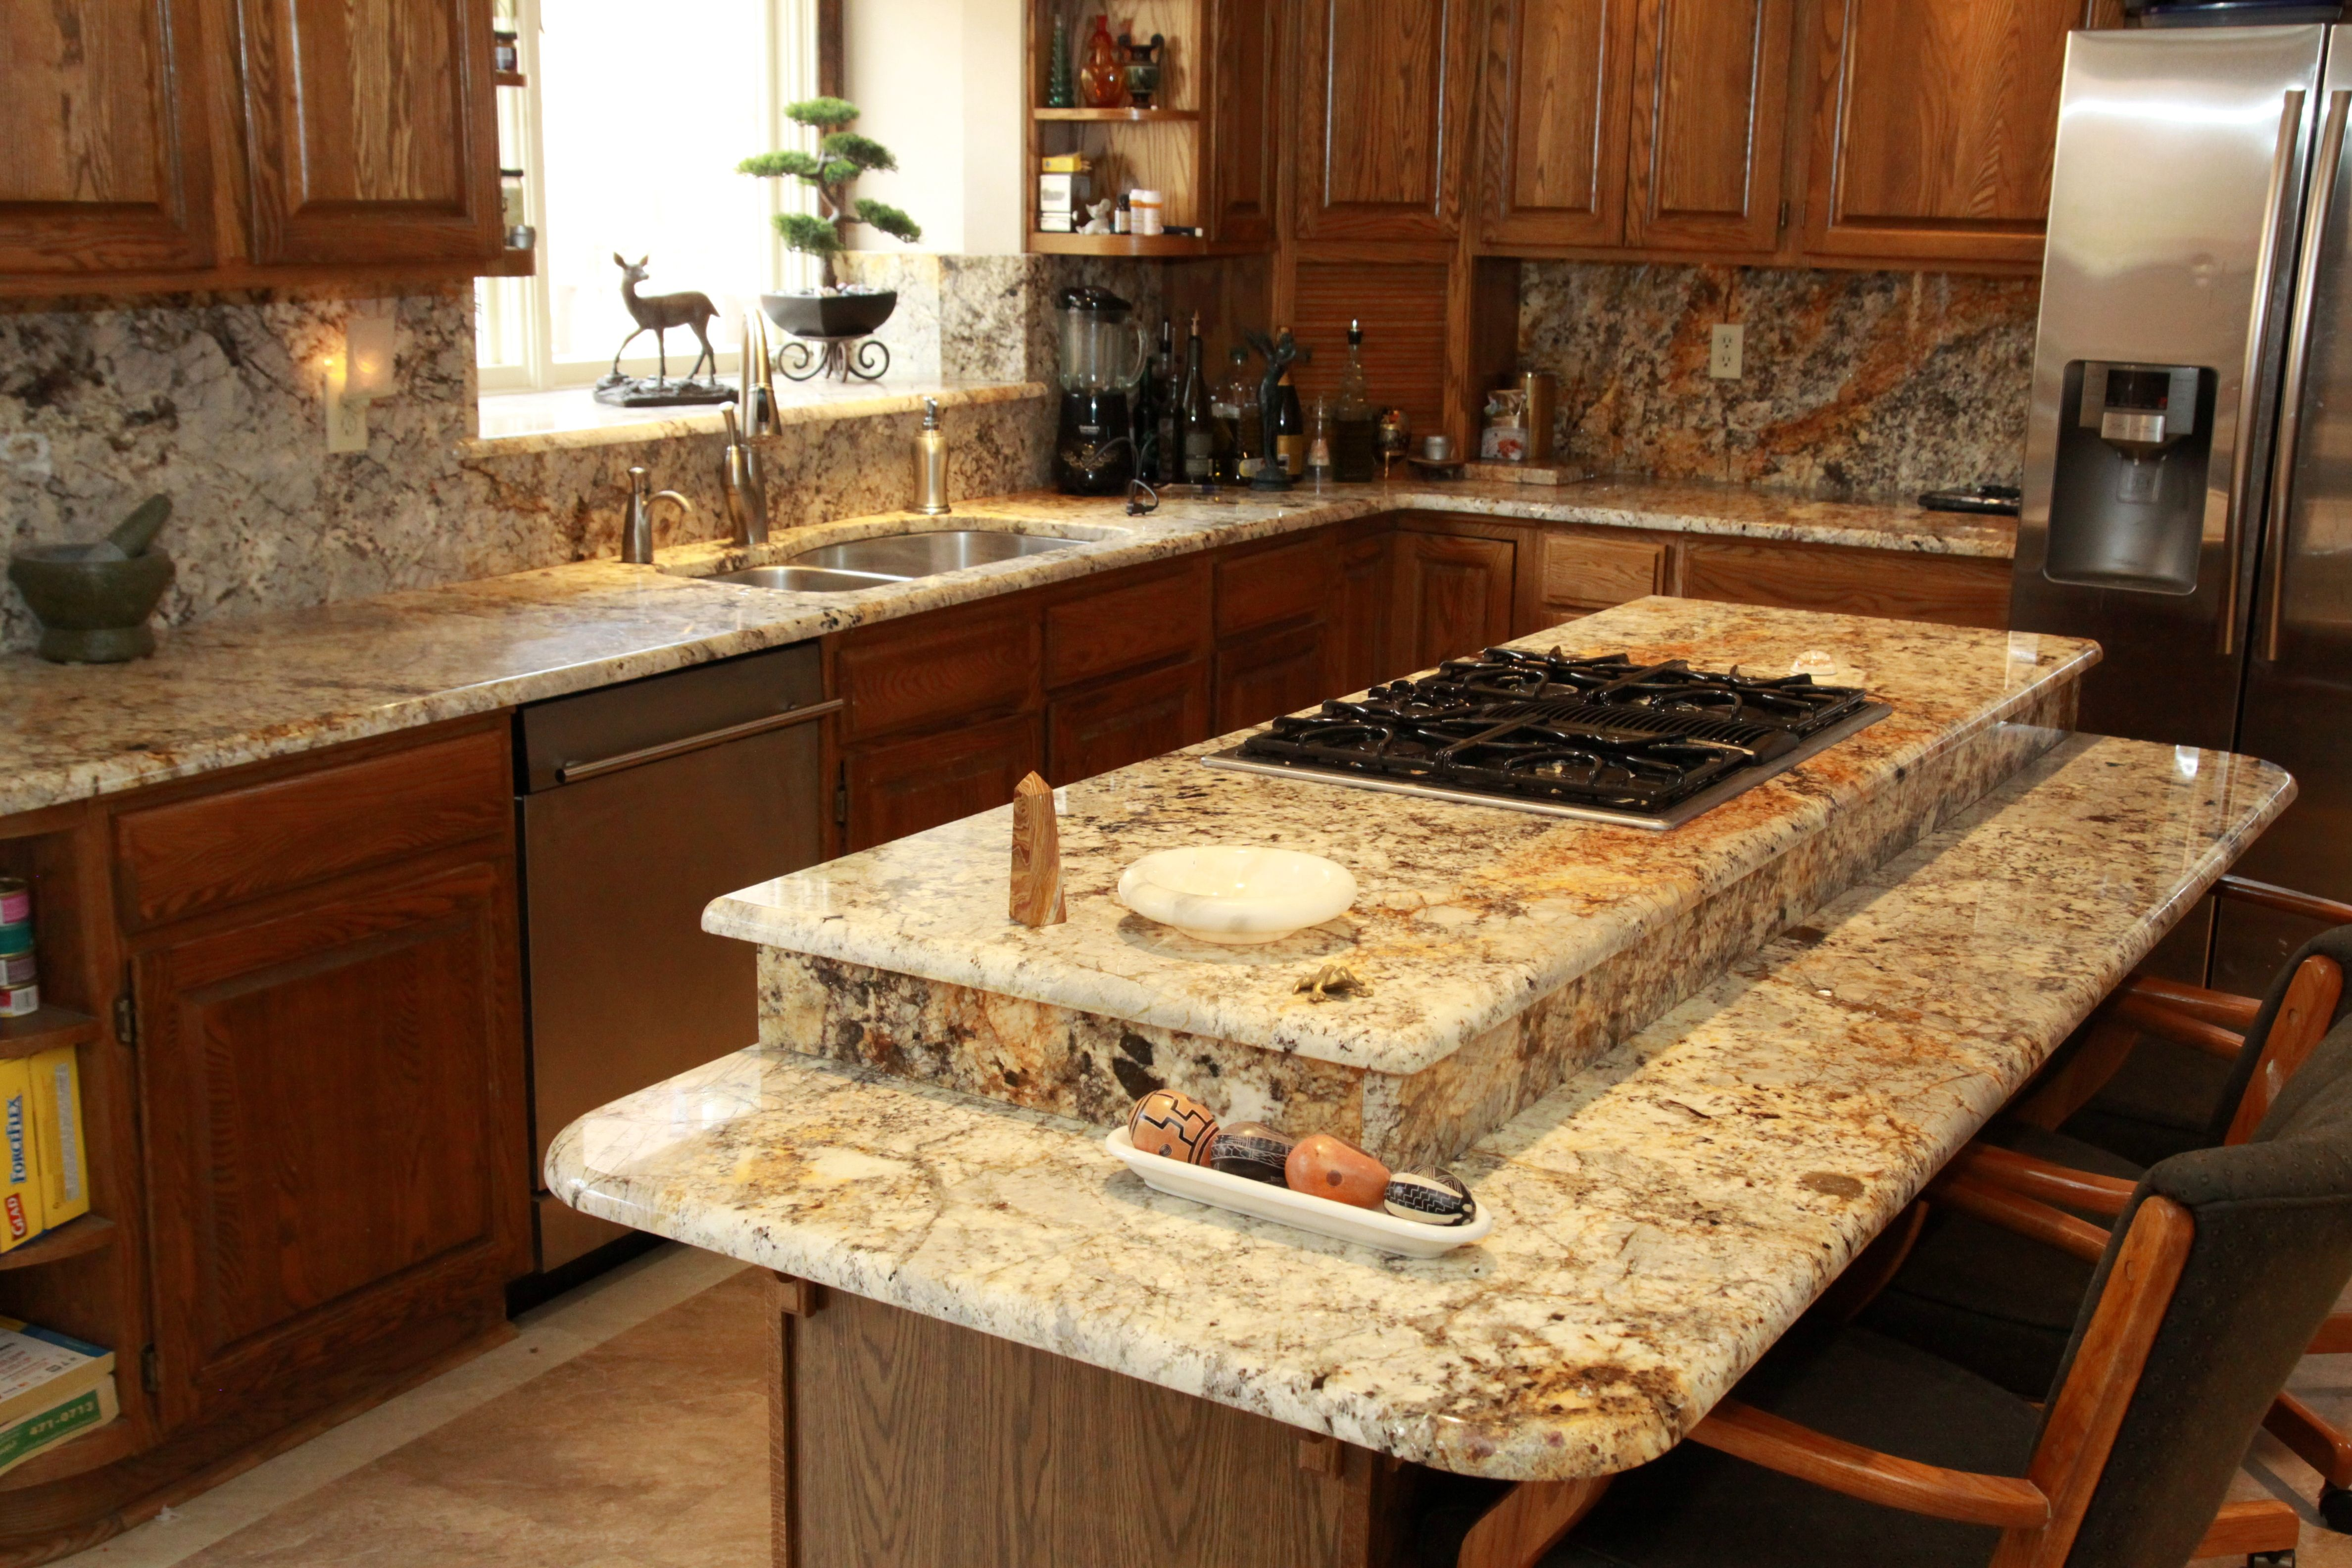 Mascarello Laminate Countertop Elegant Yet Masculine Mascarello Granite Kitchen For The